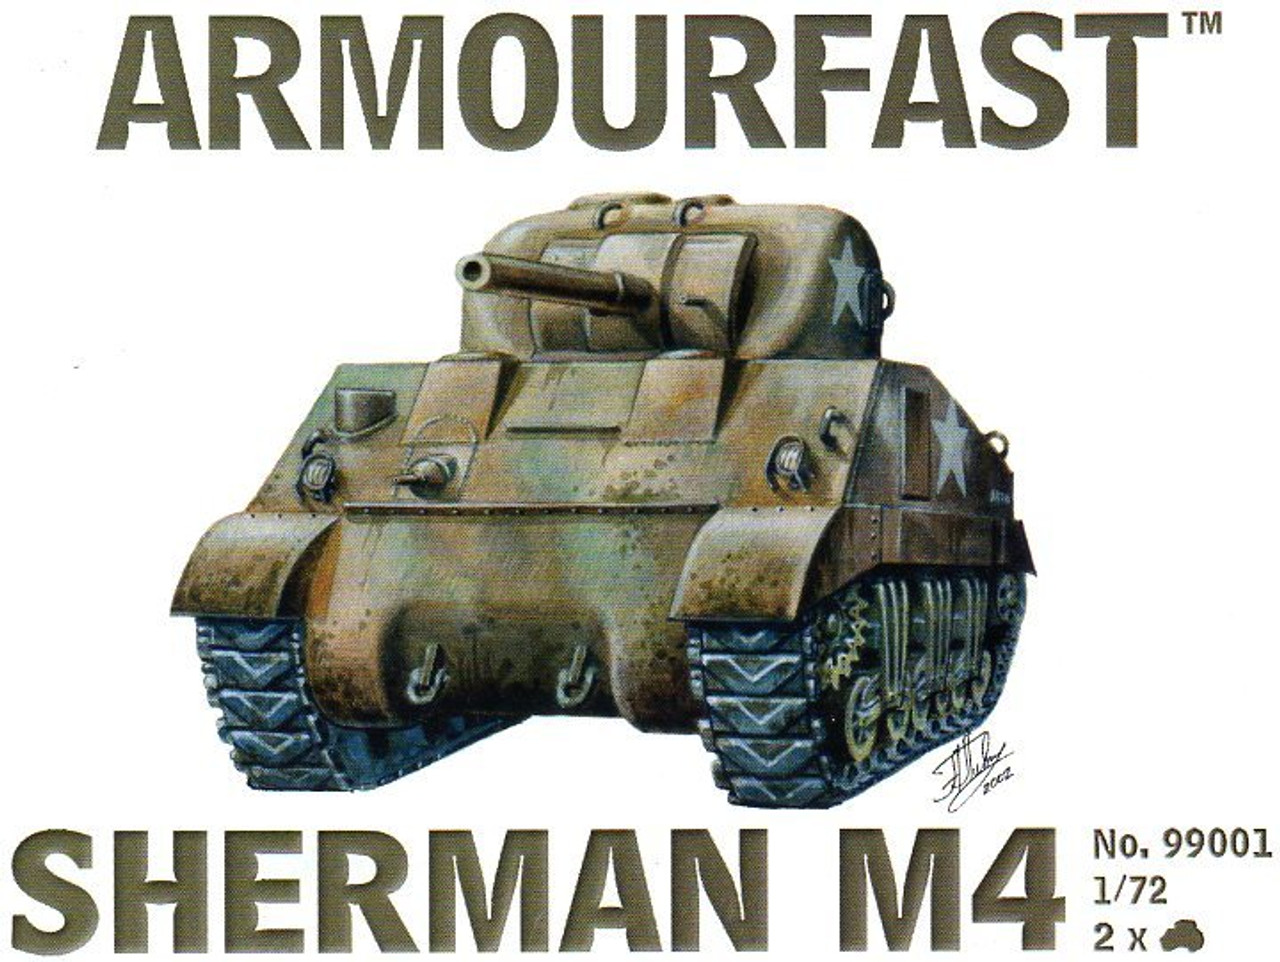 Armourfast 99001 Sherman M4 1:72 Scale Model Kit (AF99001)